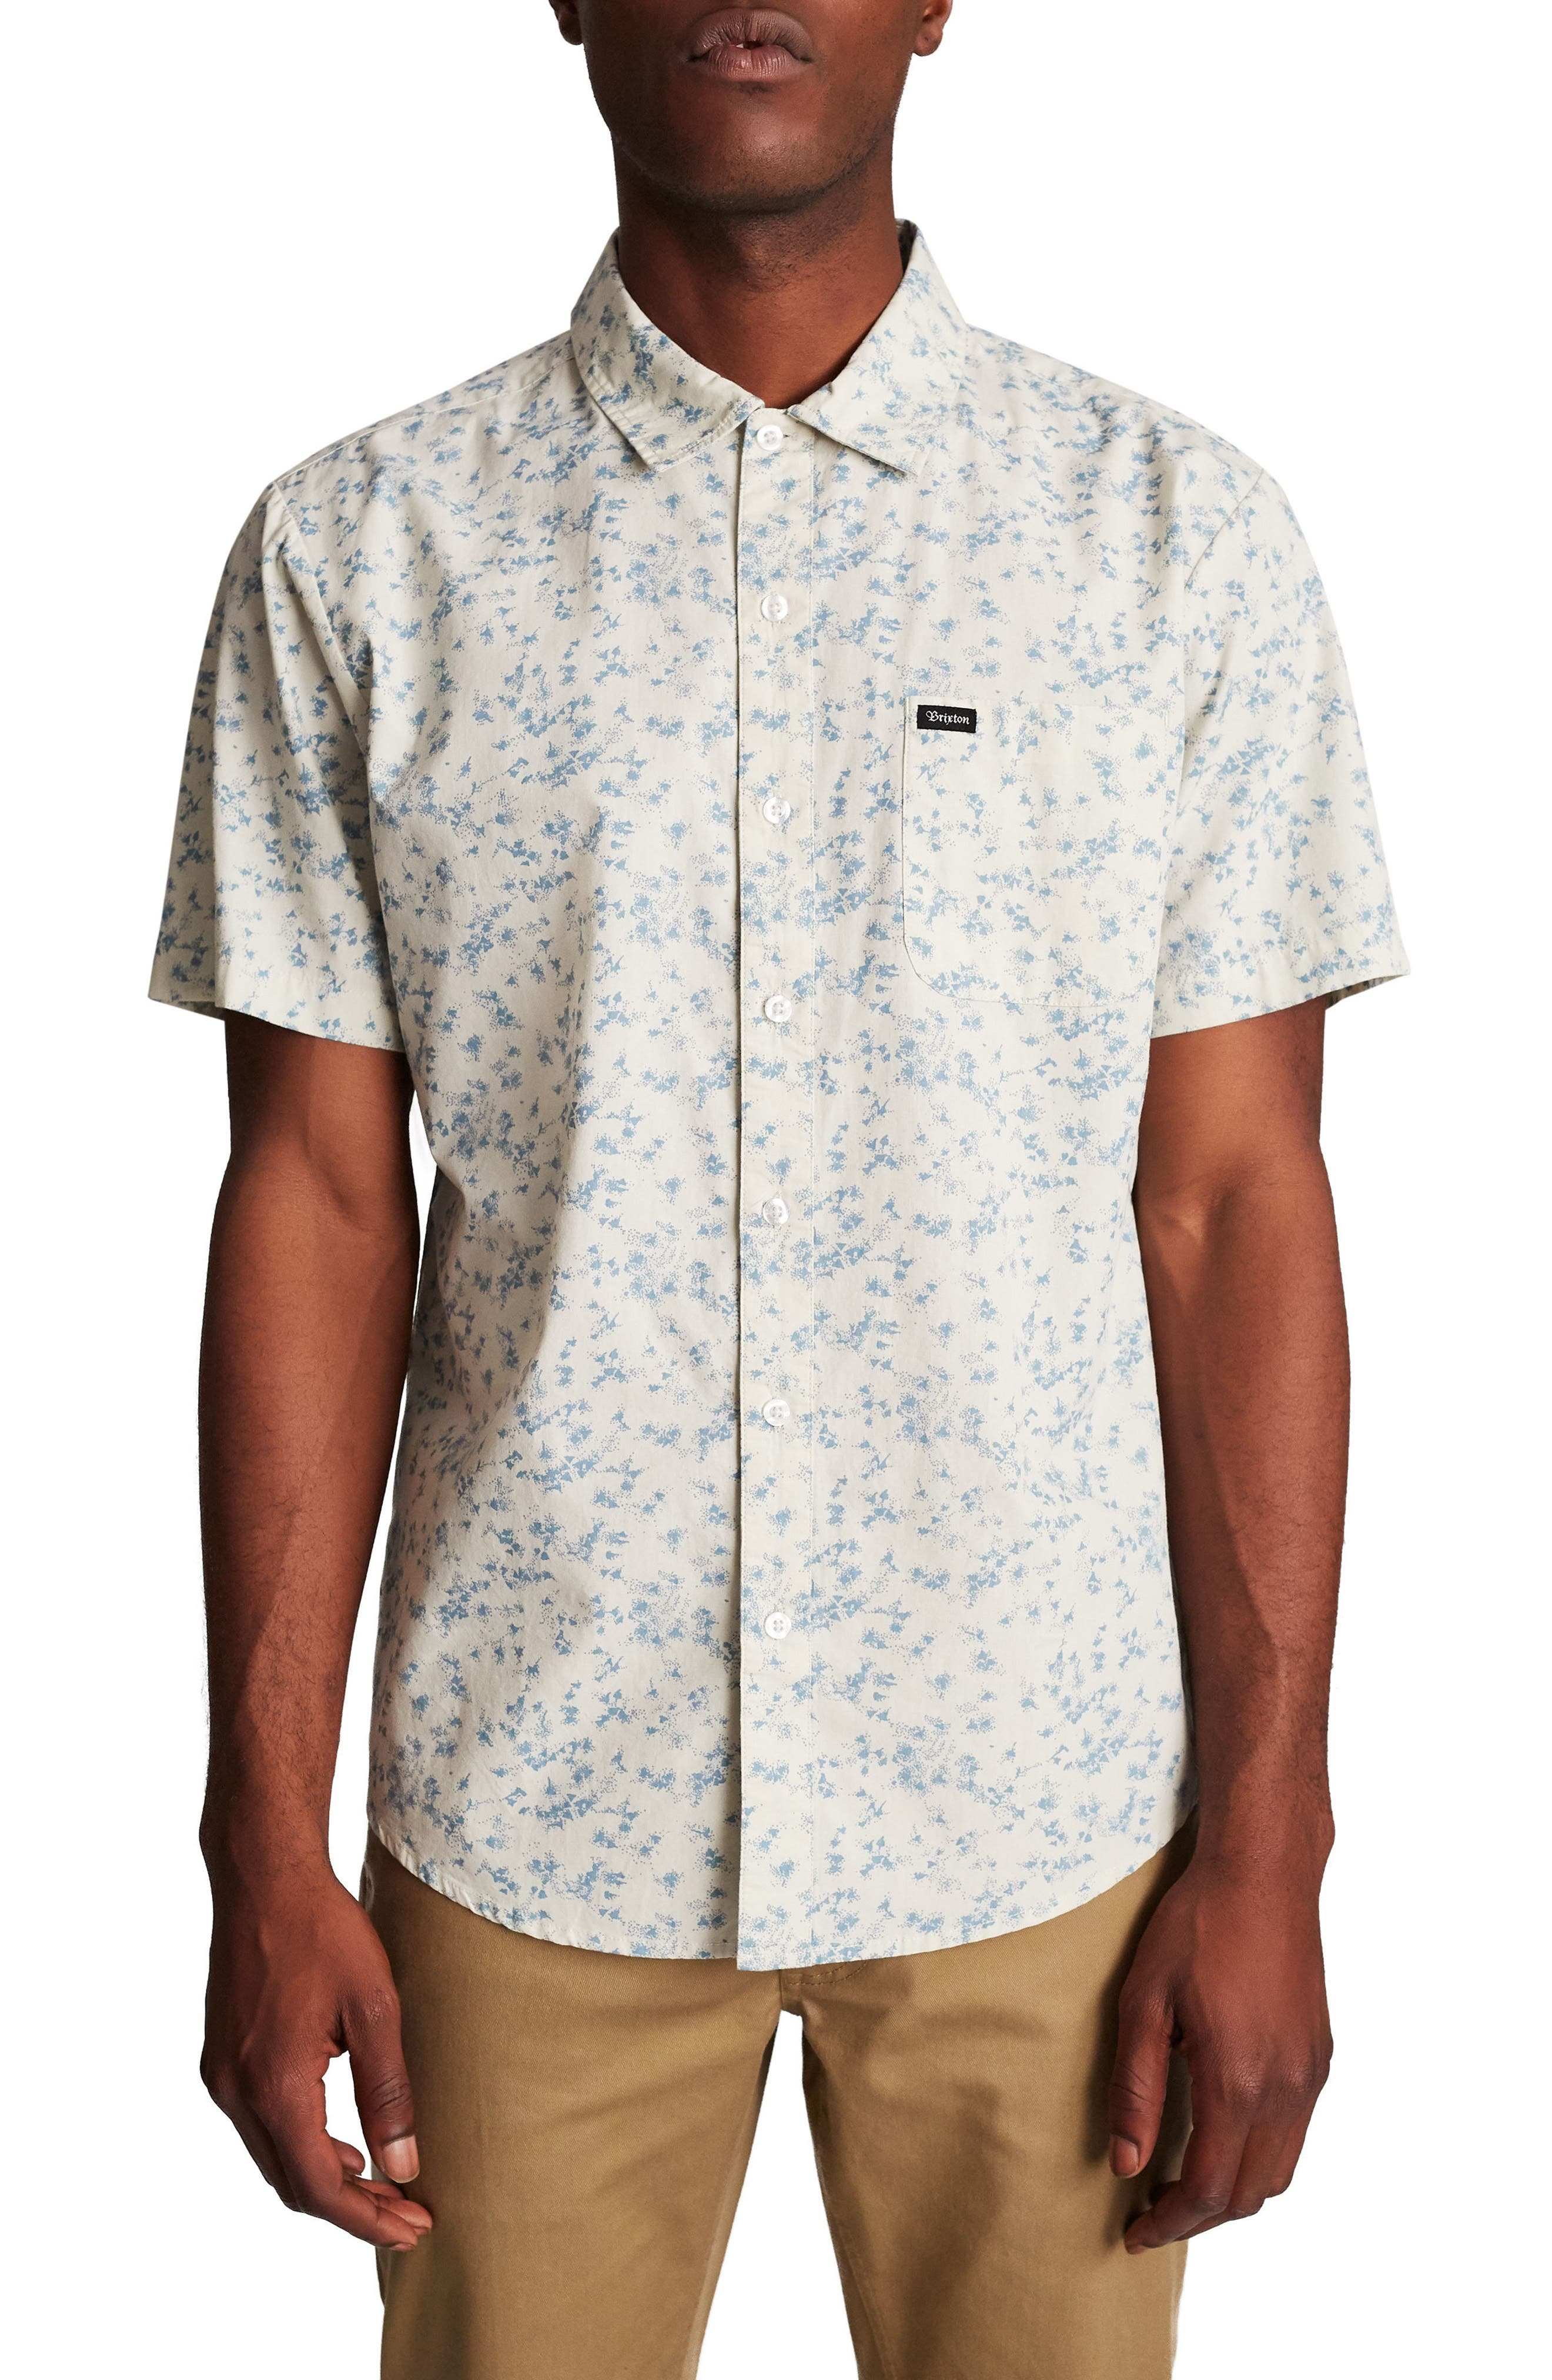 Charter Woven Shirt,                             Main thumbnail 1, color,                             Off White/ Dusty Blue